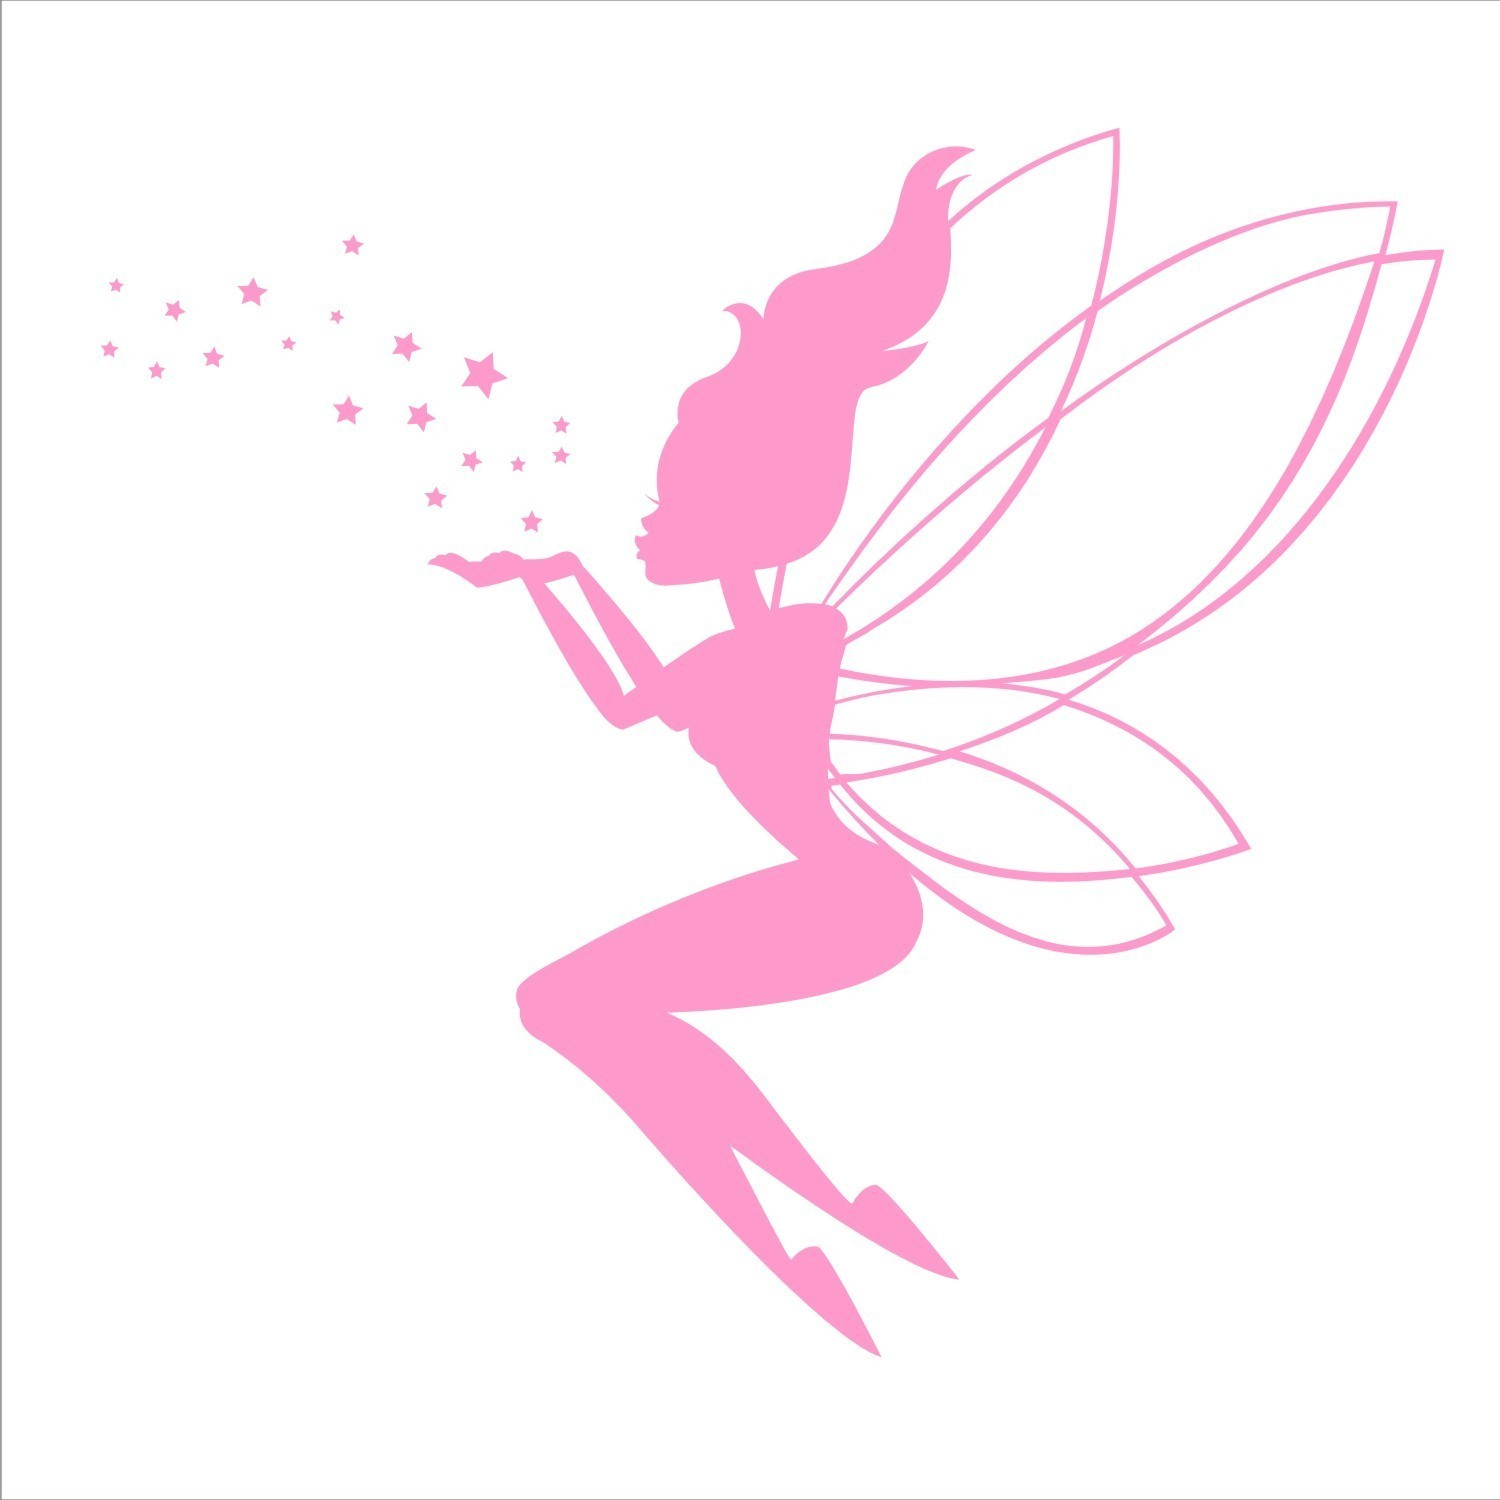 free fairy silhouette clip art at getdrawings com free for rh getdrawings com free clipart fairy lights free clipart fairy lights